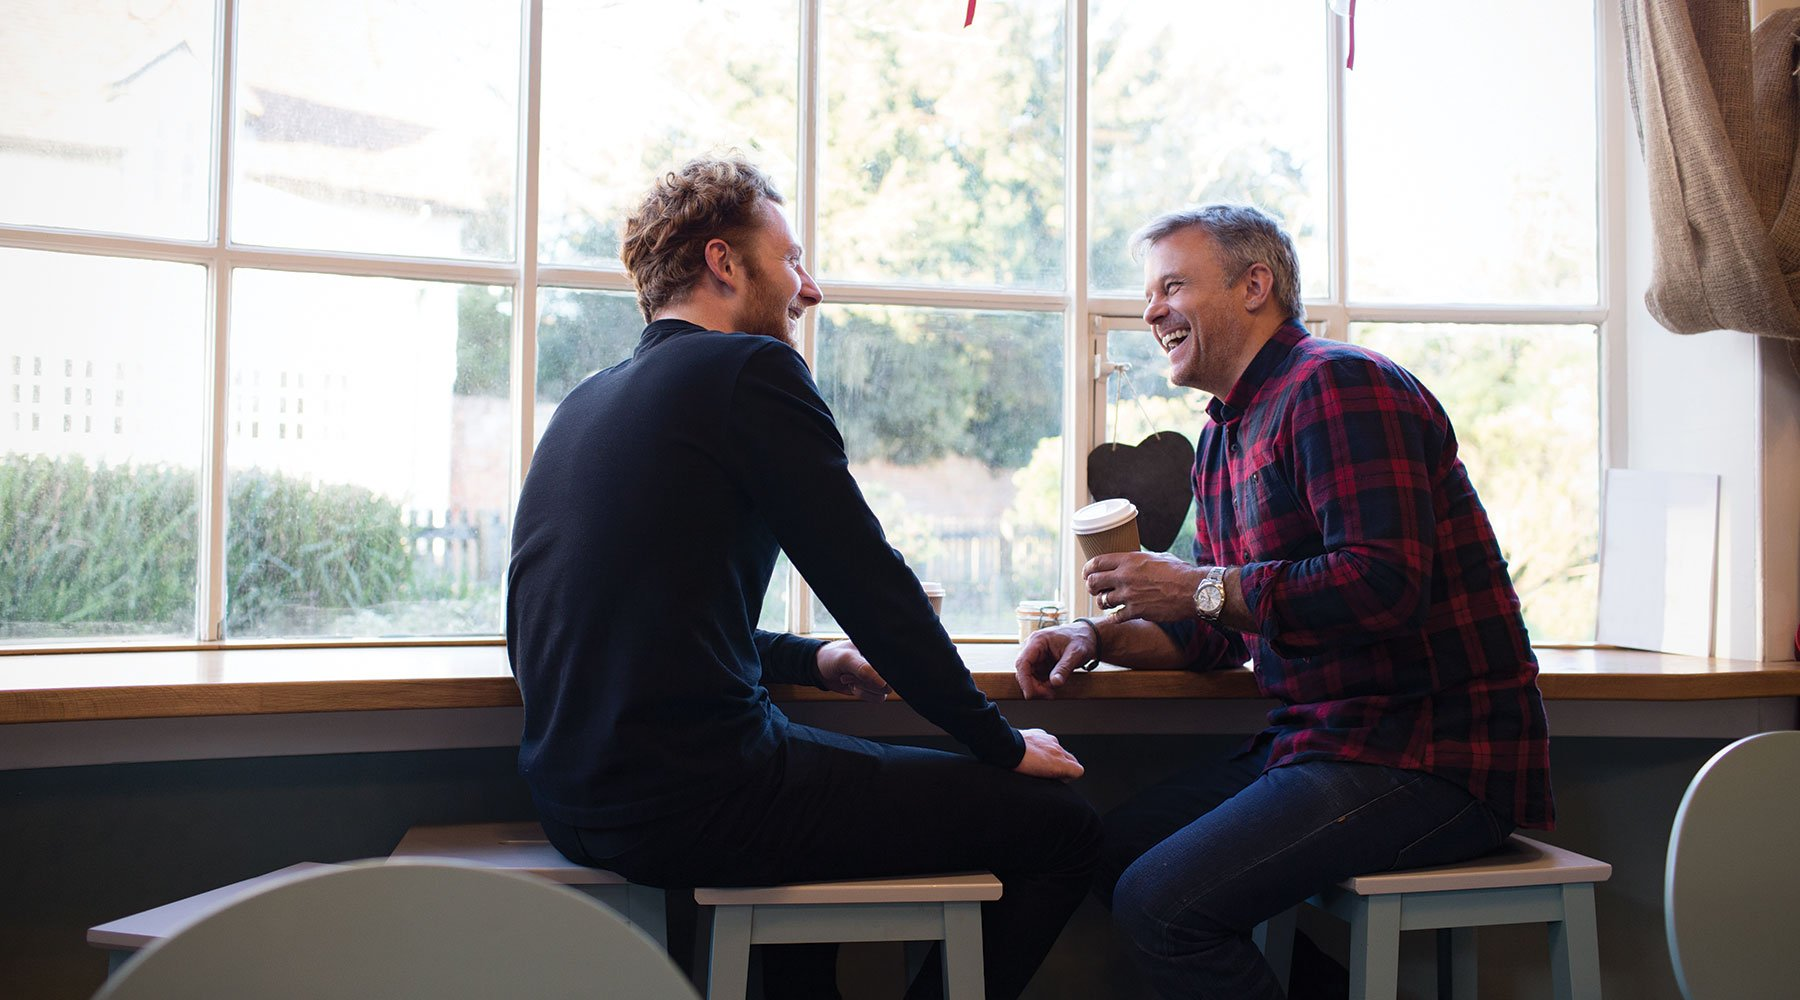 Son and father sitting together laughing in a coffee shop